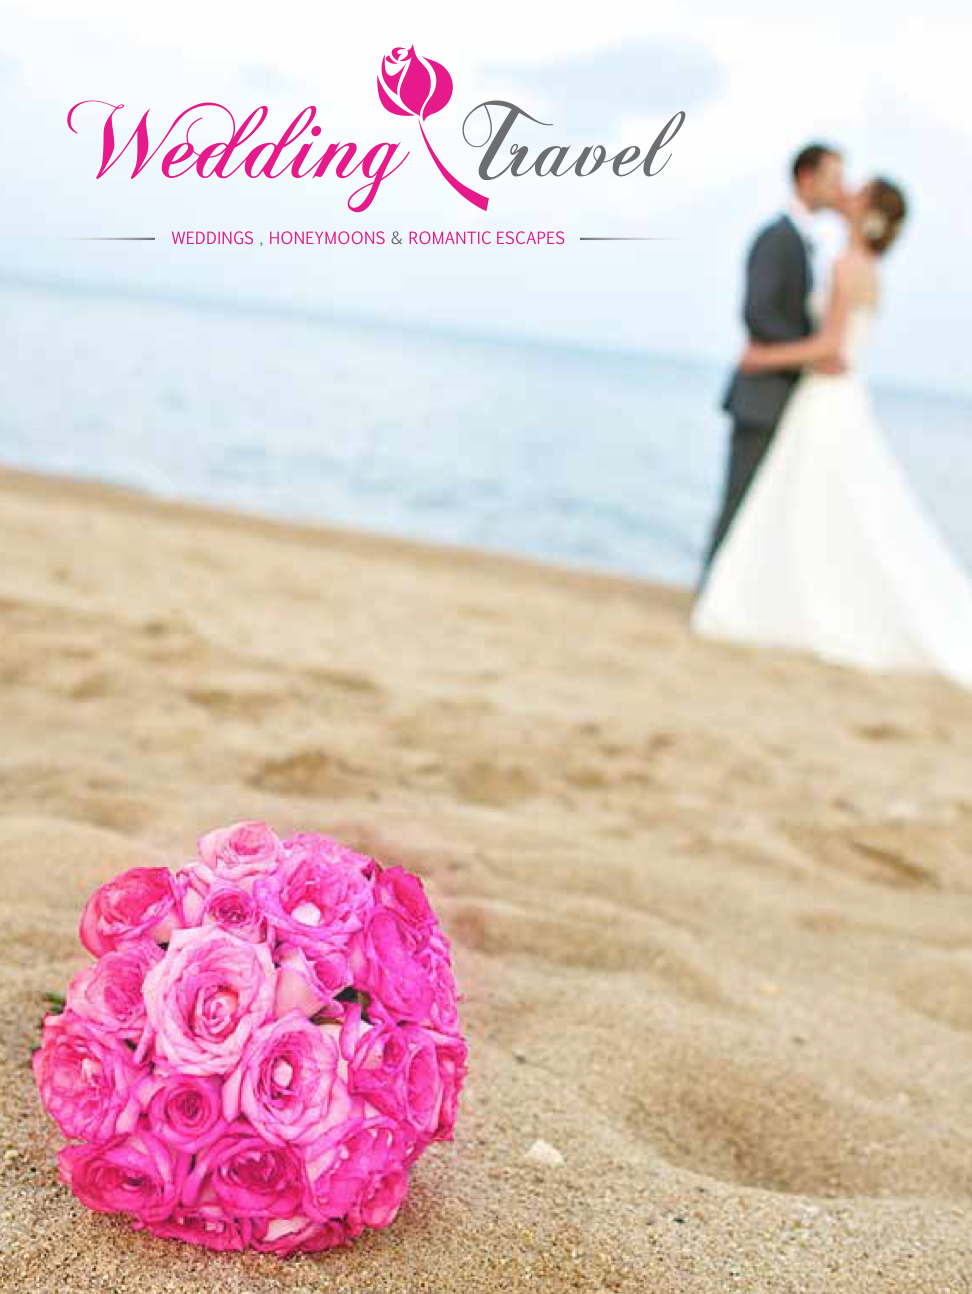 Wedding Travel - Destination Wedding Specialist